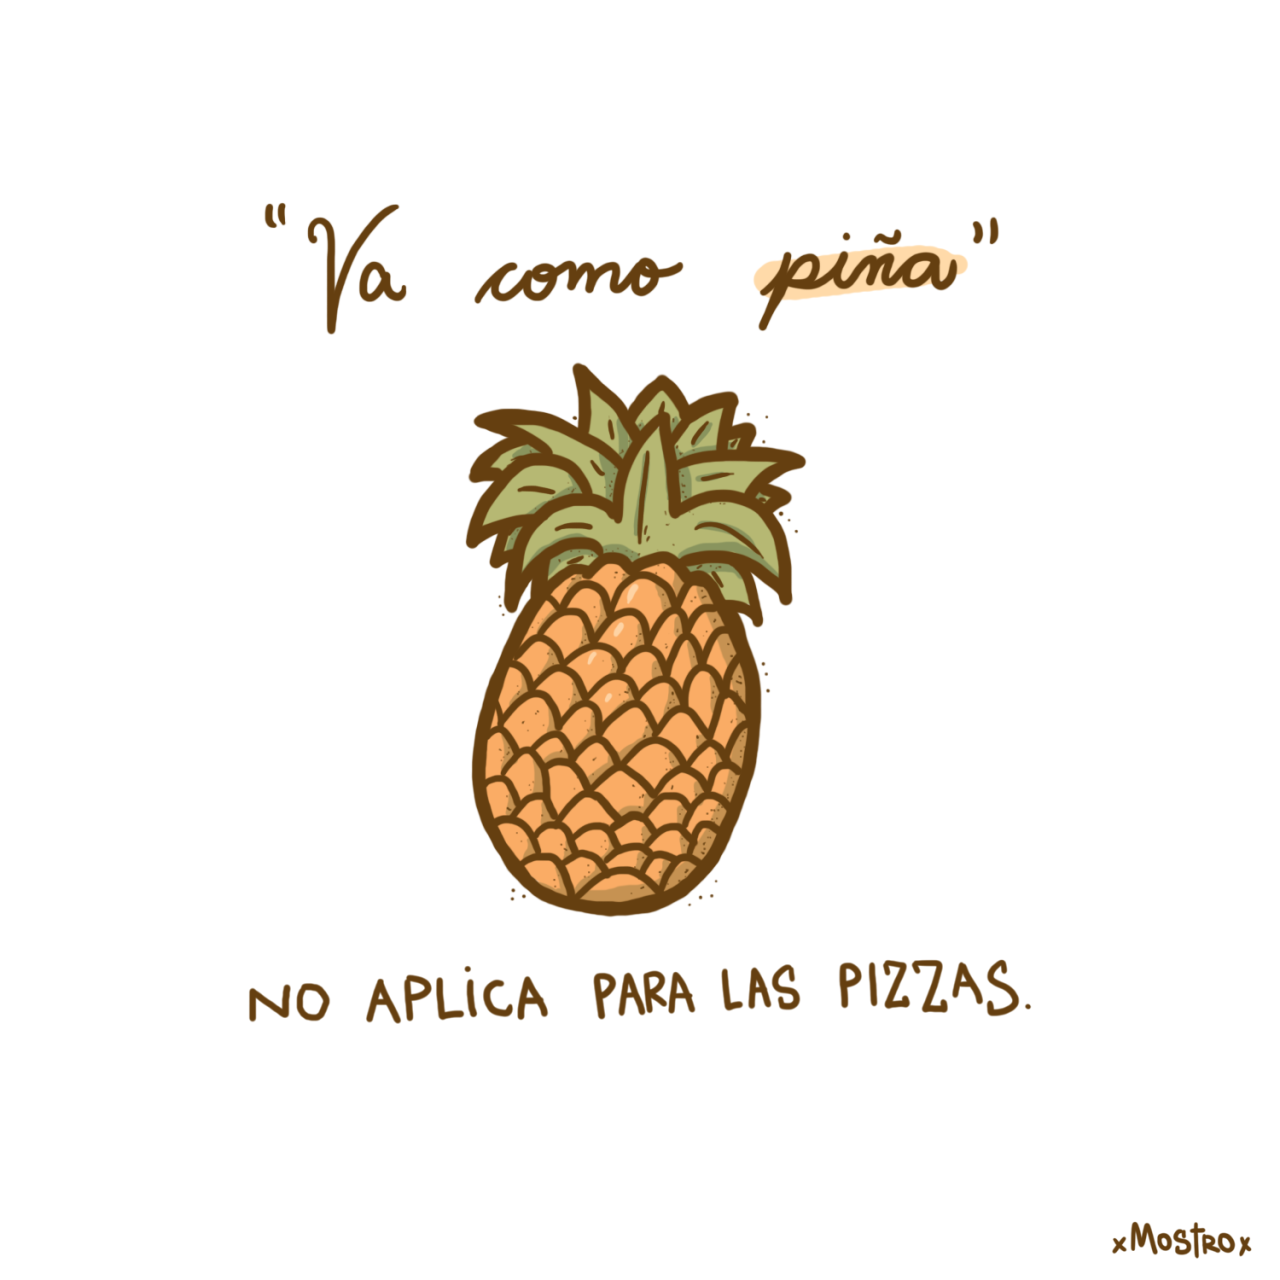 "Va como piña no aplica para las pizzas. Pineapples and pizza must never go together. パイナップルとピザを混ざるのは禁止です。 – ""Va como piña"".- Frase argentina que significa que una cosa va perfectamente con otra."